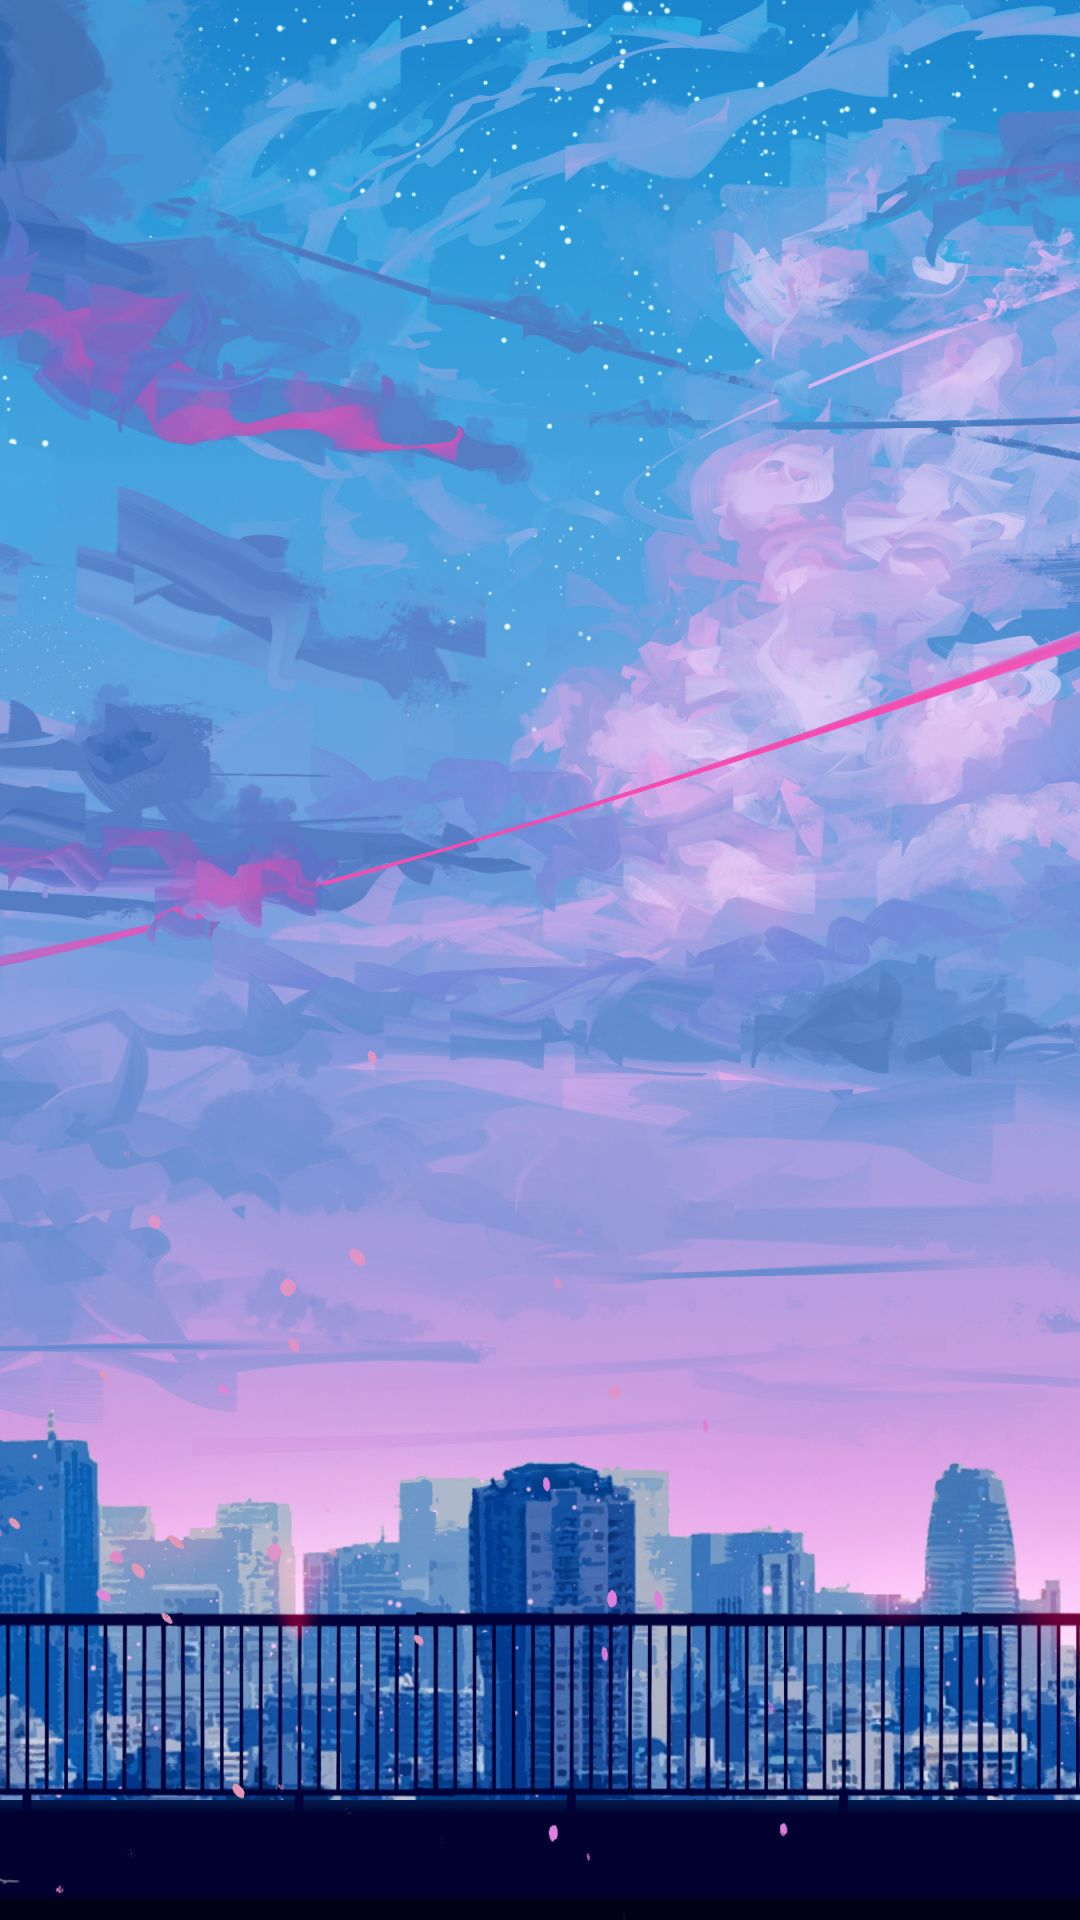 Lets Go Home Cityscape Bicycle Ride Sunset Clouds Art 1080x1920 Wallpaper Anime Scenery Wallpaper Scenery Wallpaper Aesthetic Wallpapers